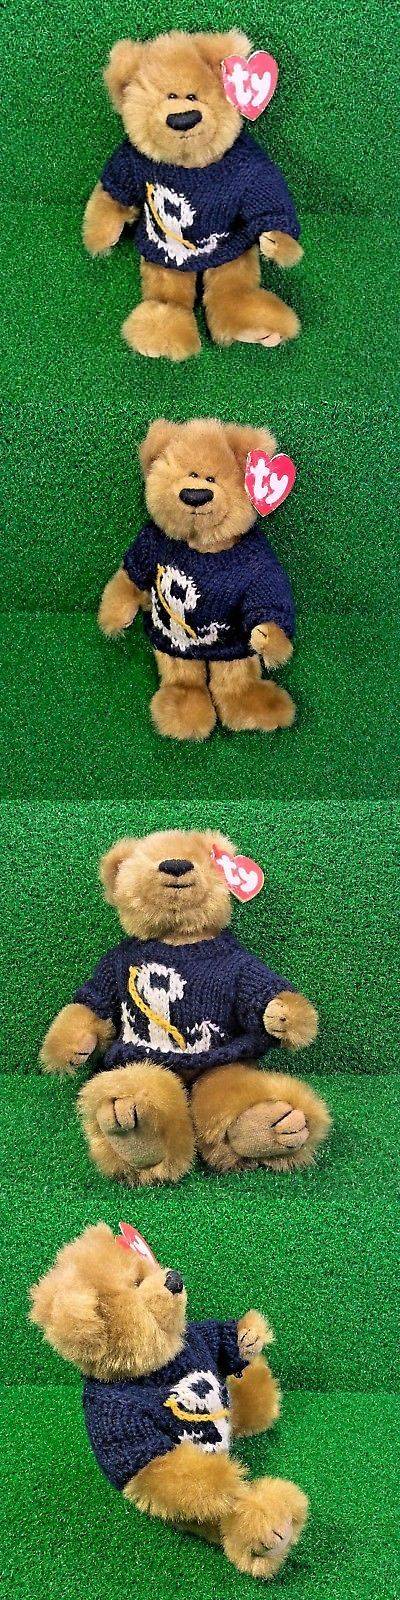 00e806036fb Attic 1627  Rare Ty Attic Treasures Salty The Bear Retired Jointed Plush  Toy Mwnmt -  BUY IT NOW ONLY   27.98 on eBay!